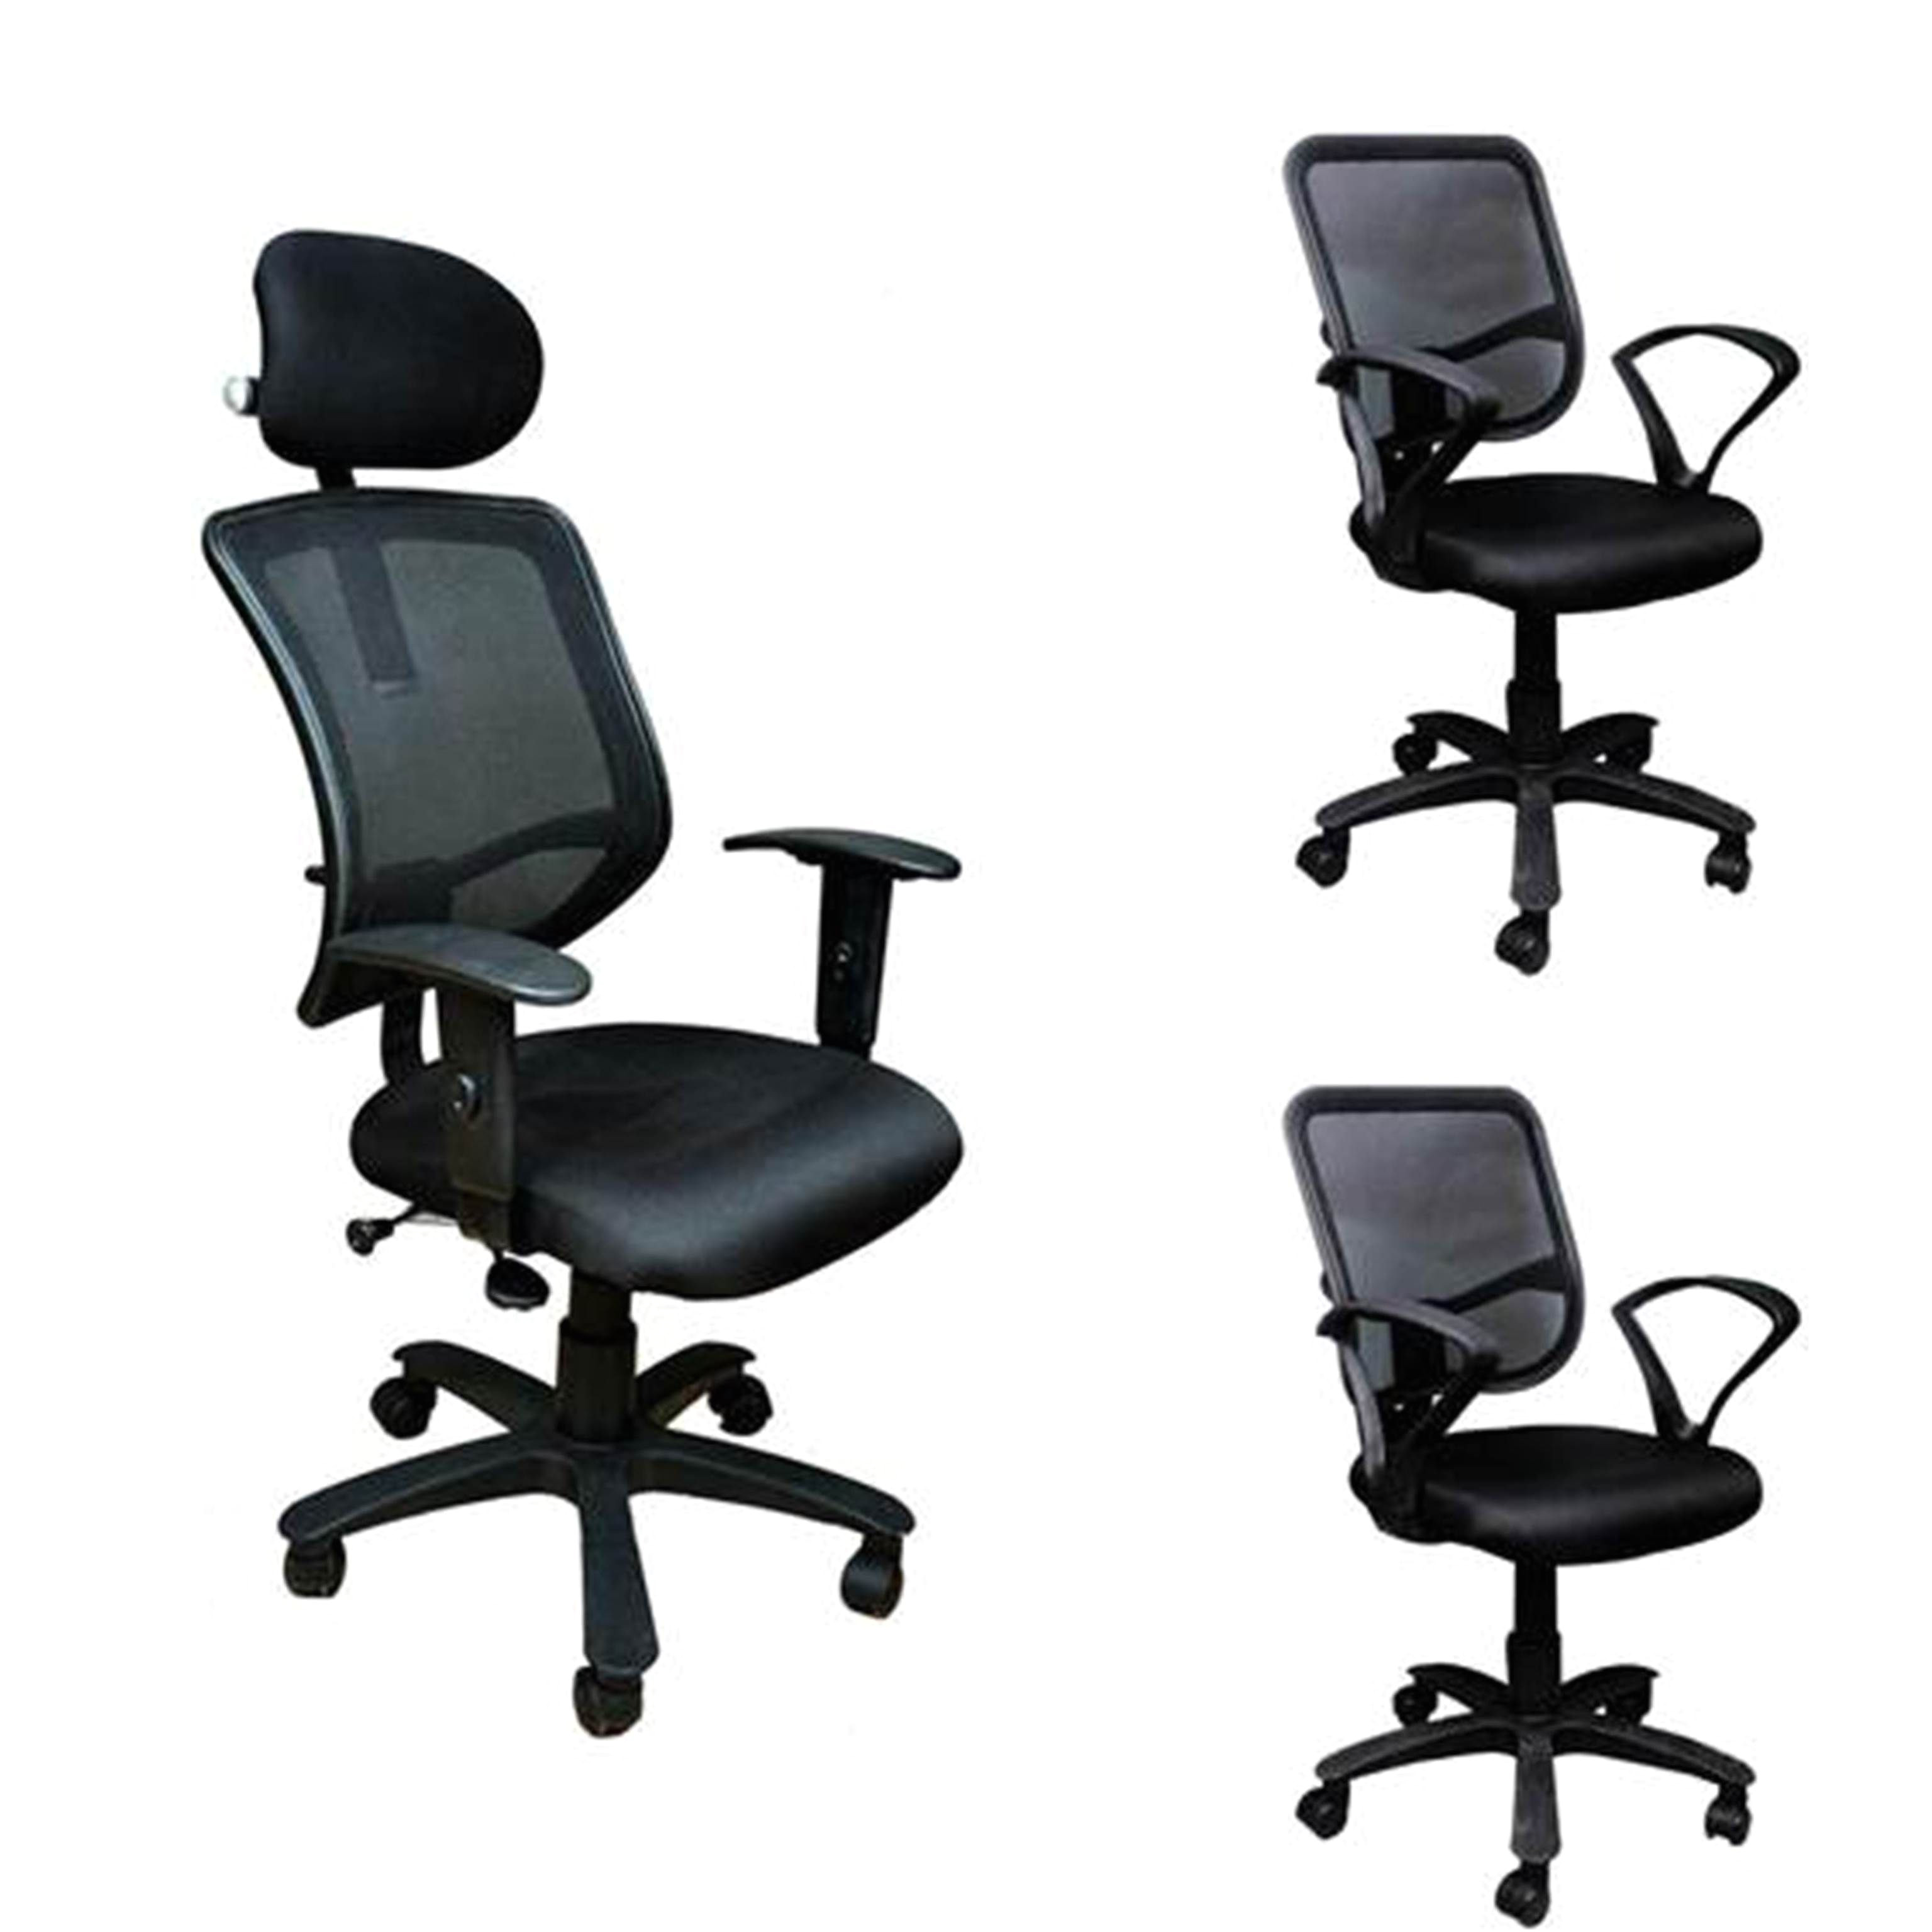 buy 1 executive chair get 2 office chairs free